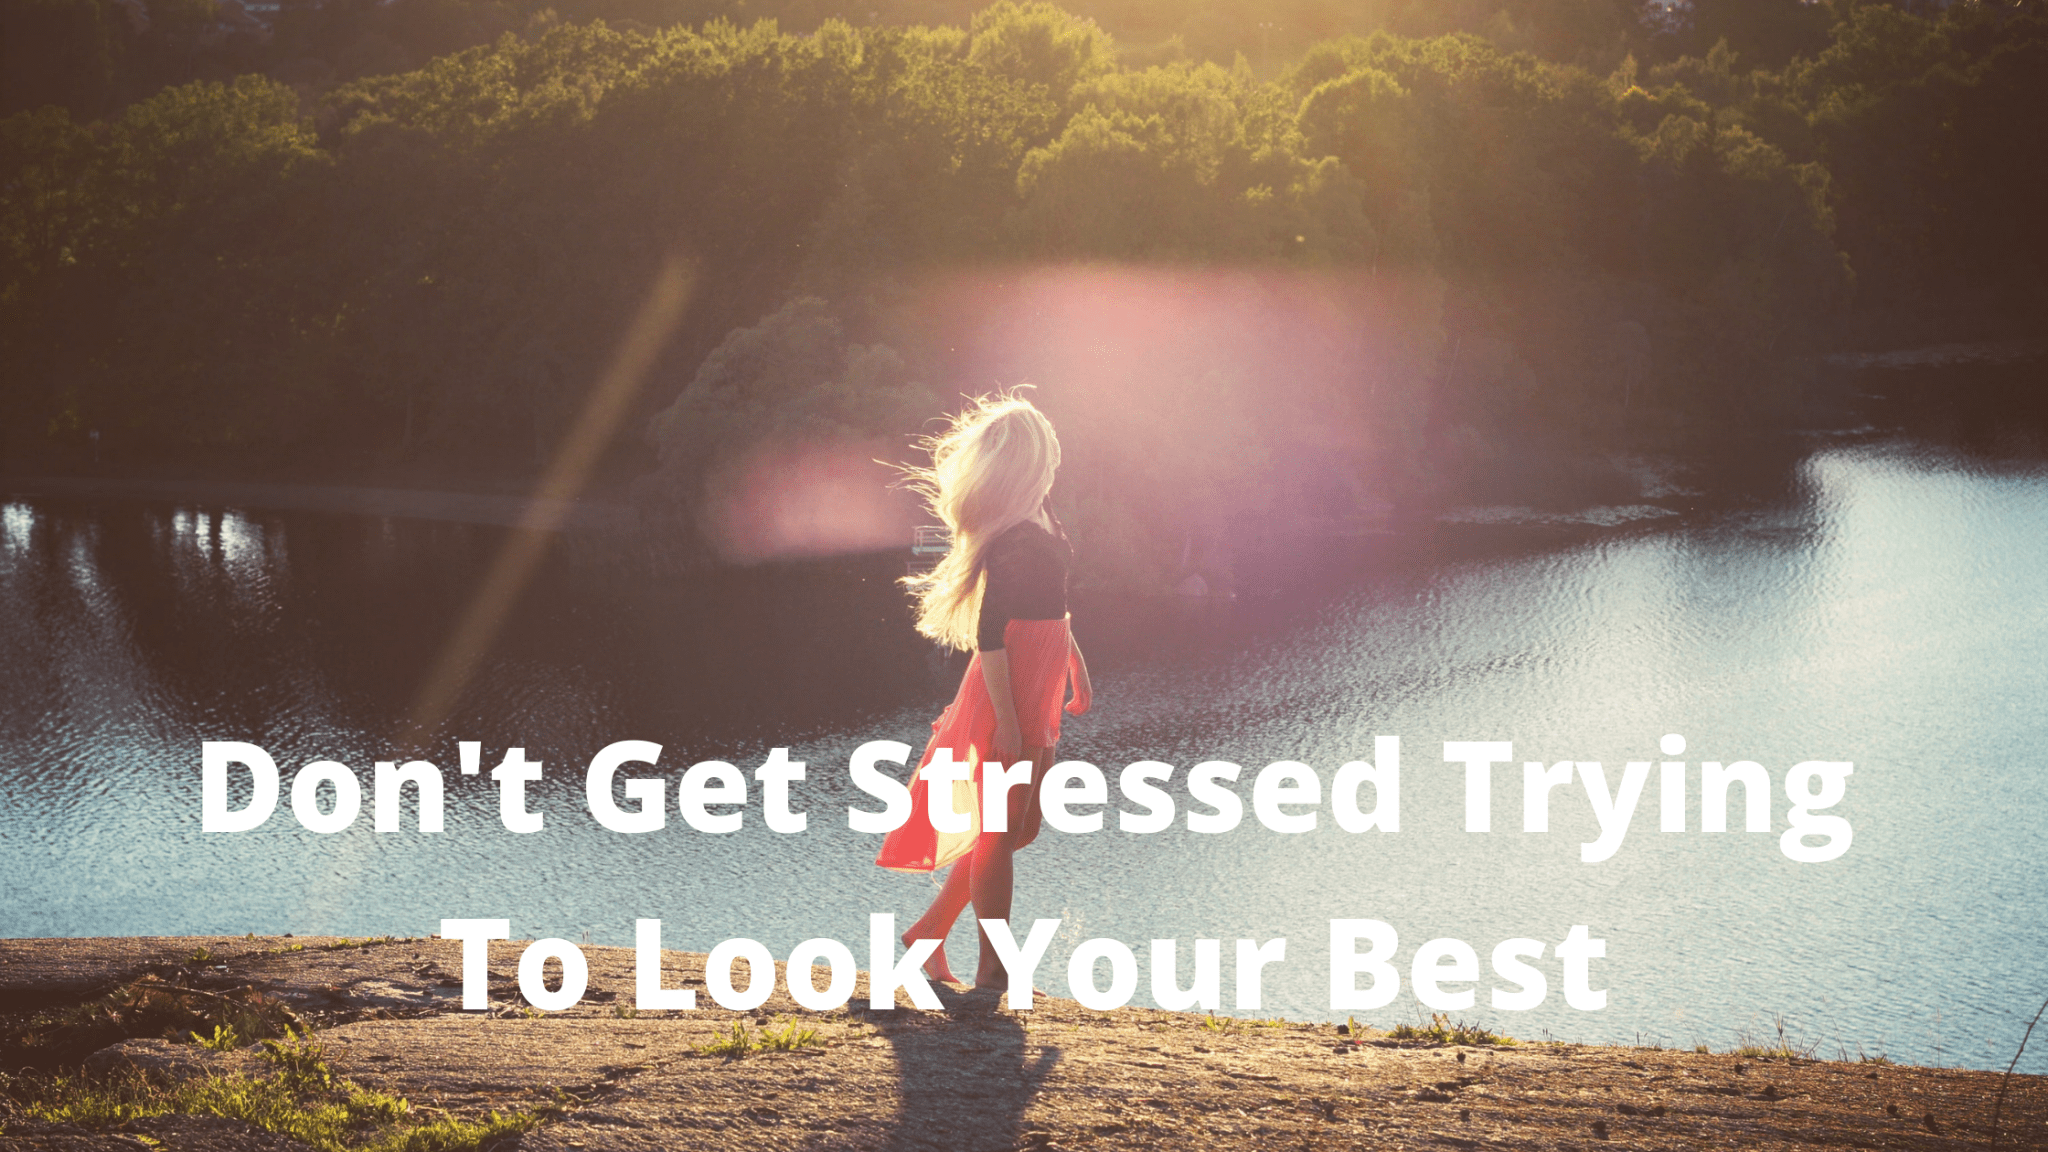 Don't Get Stressed Trying To Look Your Best